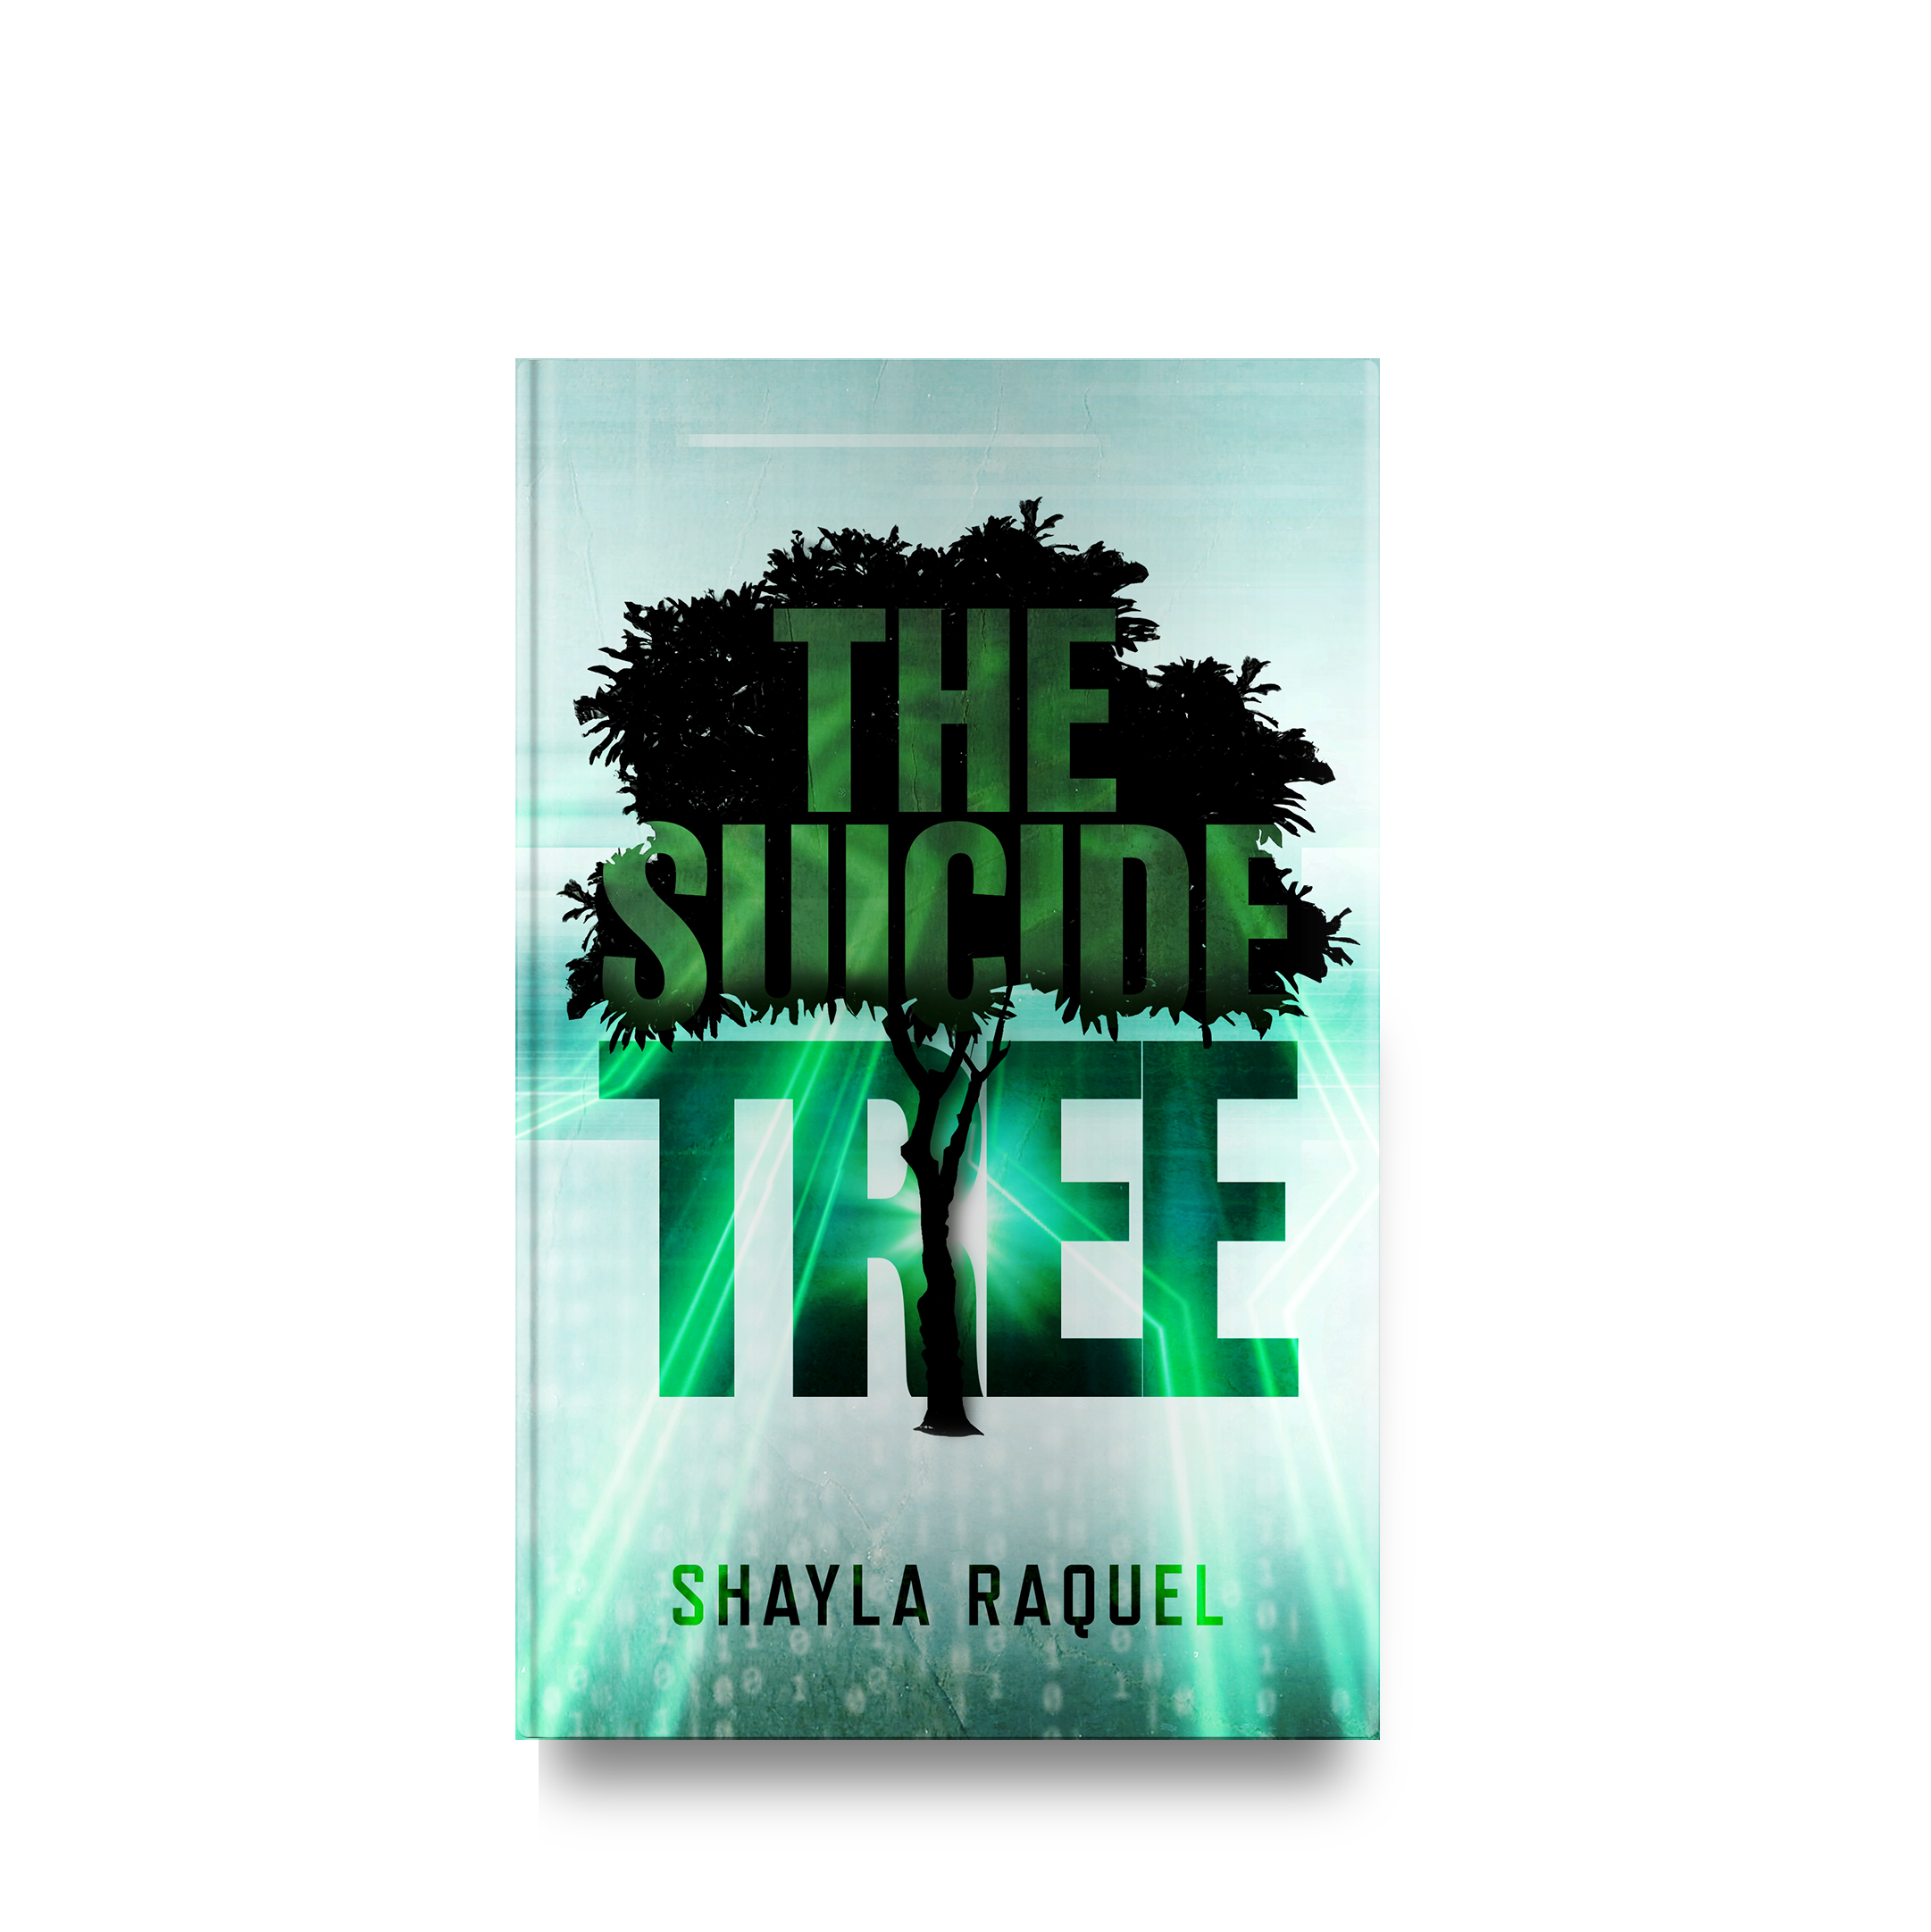 Shayla Raquel's The Suicide Tree || Designed by TheThatchery.com